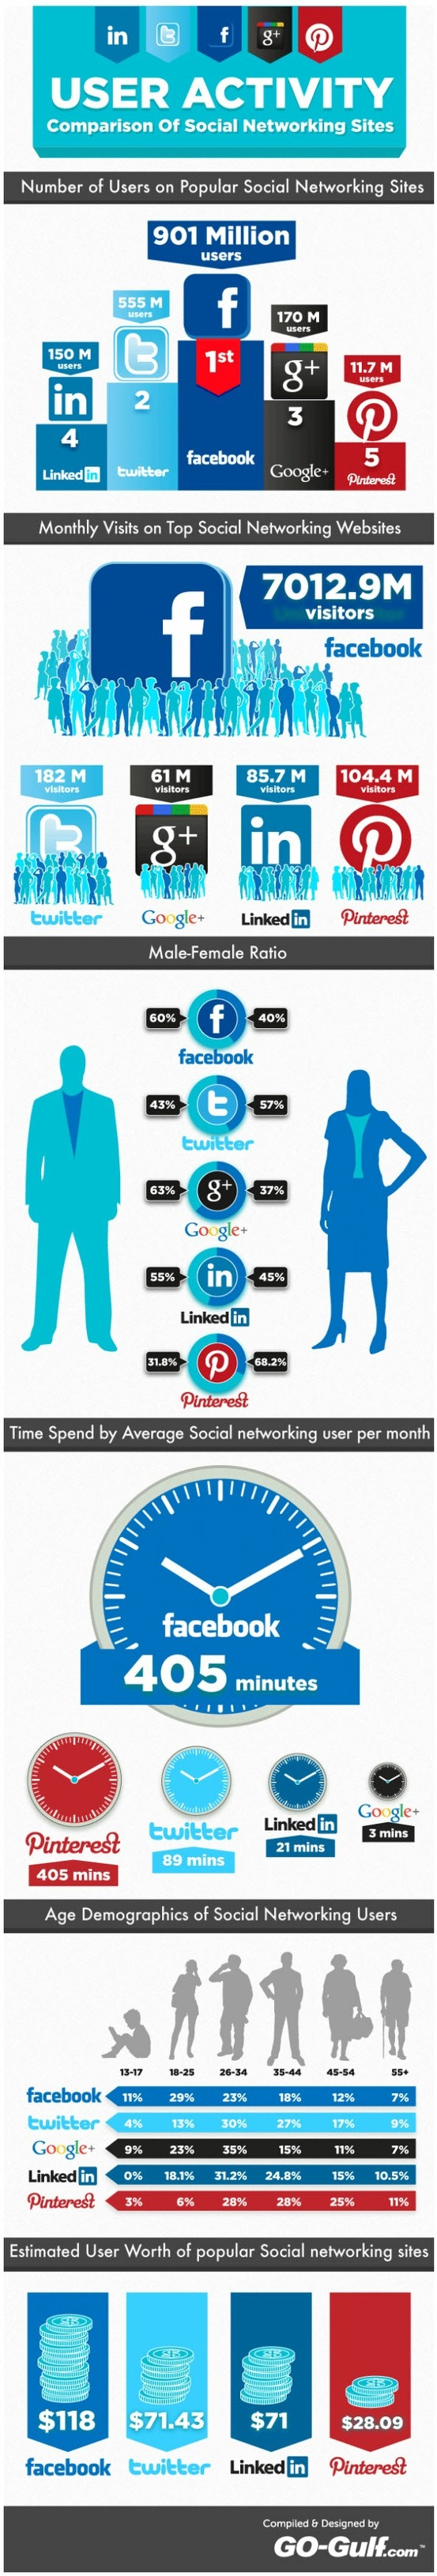 The social network tribes, user comparison of social networking sites. #infographic ................................................ http://humor.sharkmegalodon.com/2012/07/the-social-network-tribes-user-comparison-of-social-networking-sites-infographicUser Activities, Social Network, Web Design, Socialnetwork, Social Media, Network Site, Social Networks, Infographic, Socialmedia